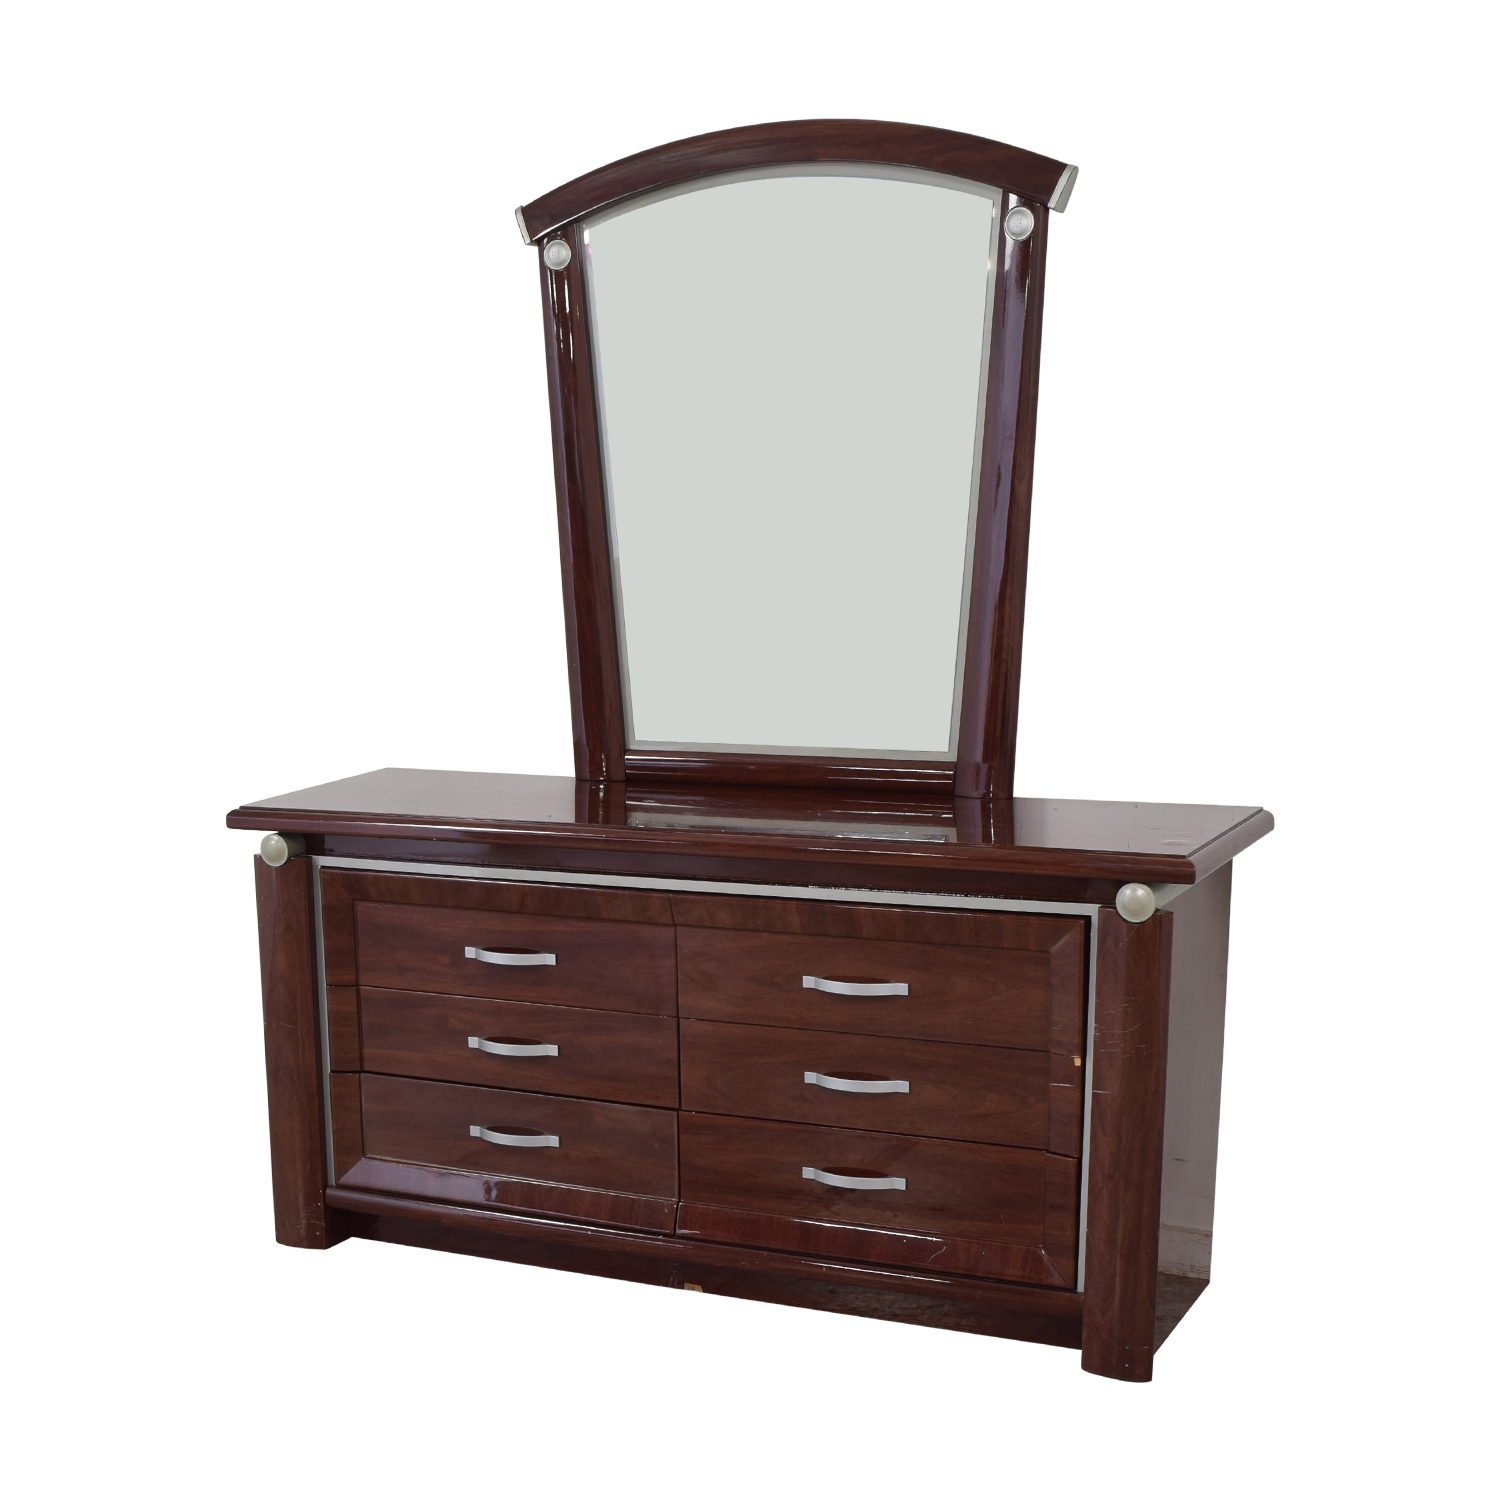 buy Arros Group Furniture Dresser with Mirror Arros Group